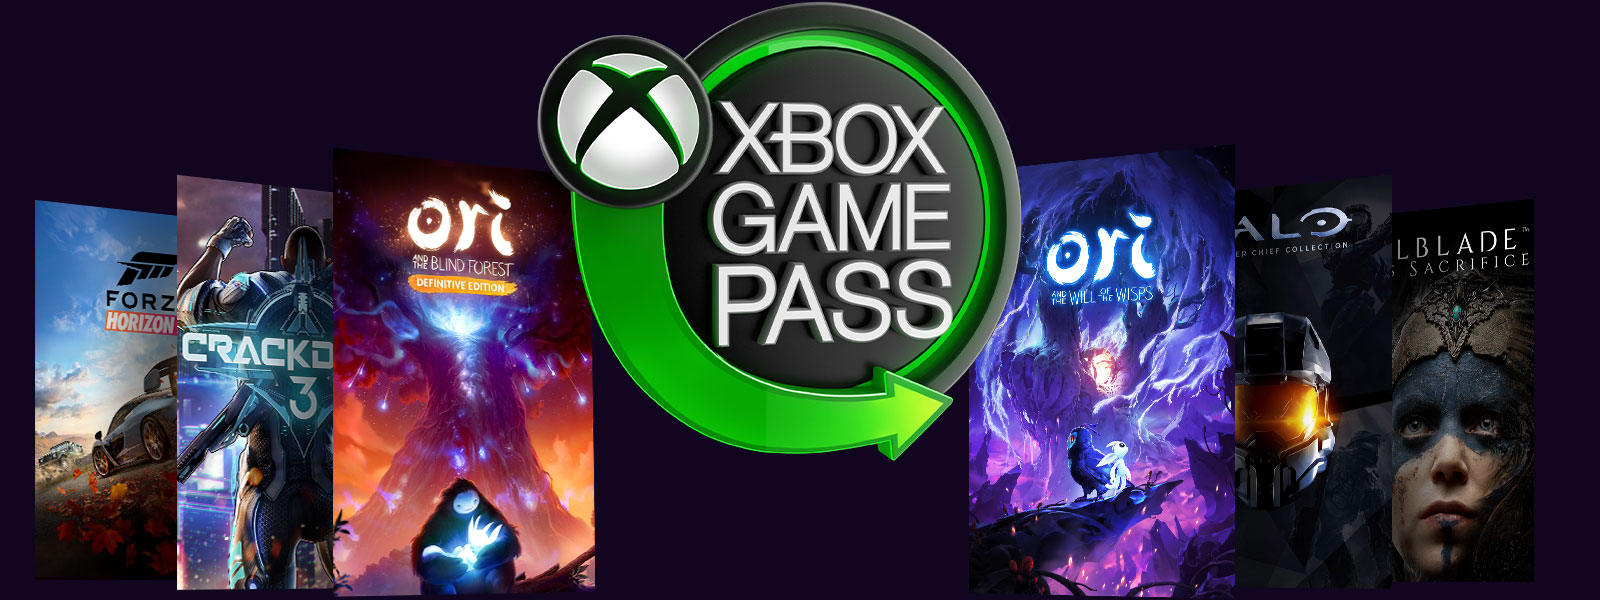 Xbox Game Pass-logo met boxshot van Ori and the Will of the Wisps, Ori and the Blind Forest, Crackdown 3, Halo, Forza Horizon 4 en Hellblade